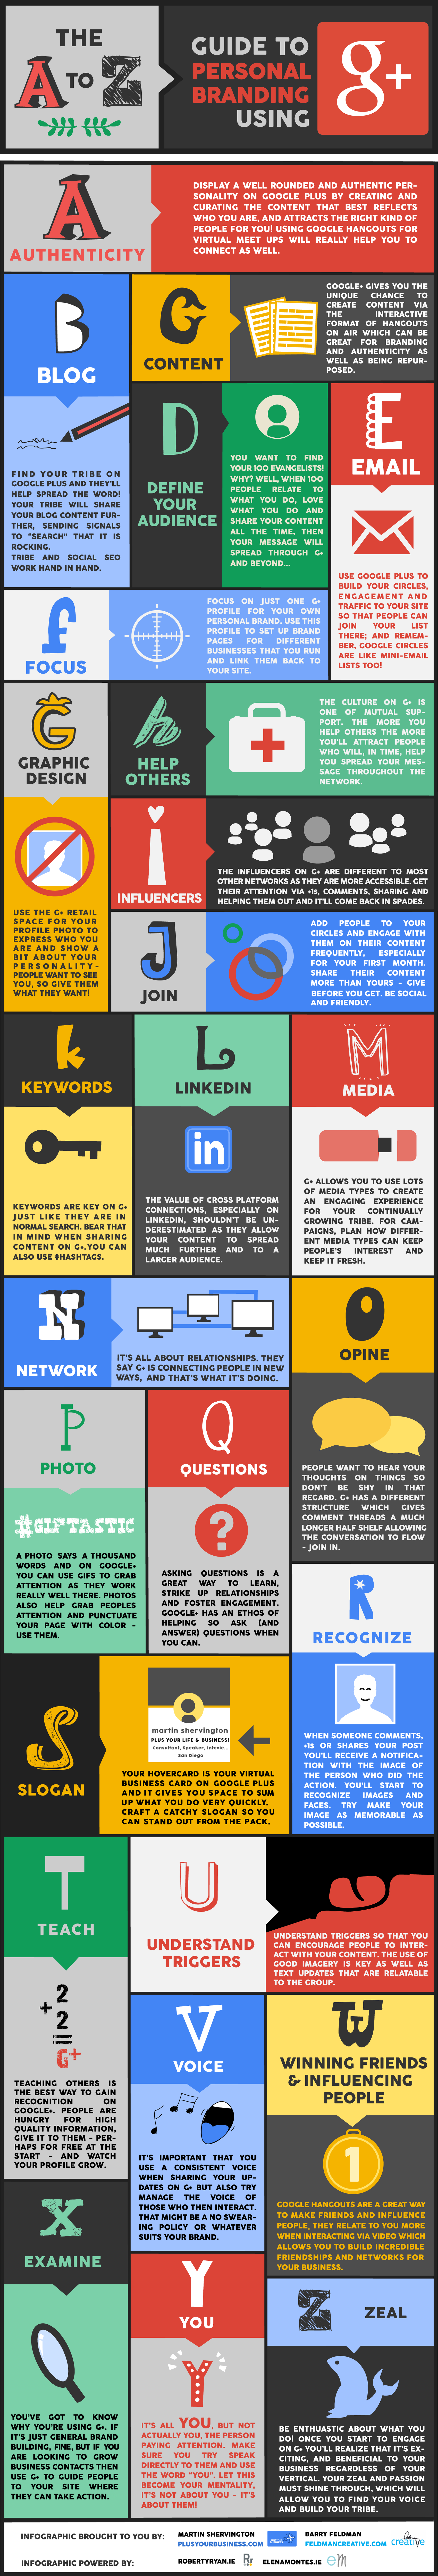 Guide to Personal Branding Using G+